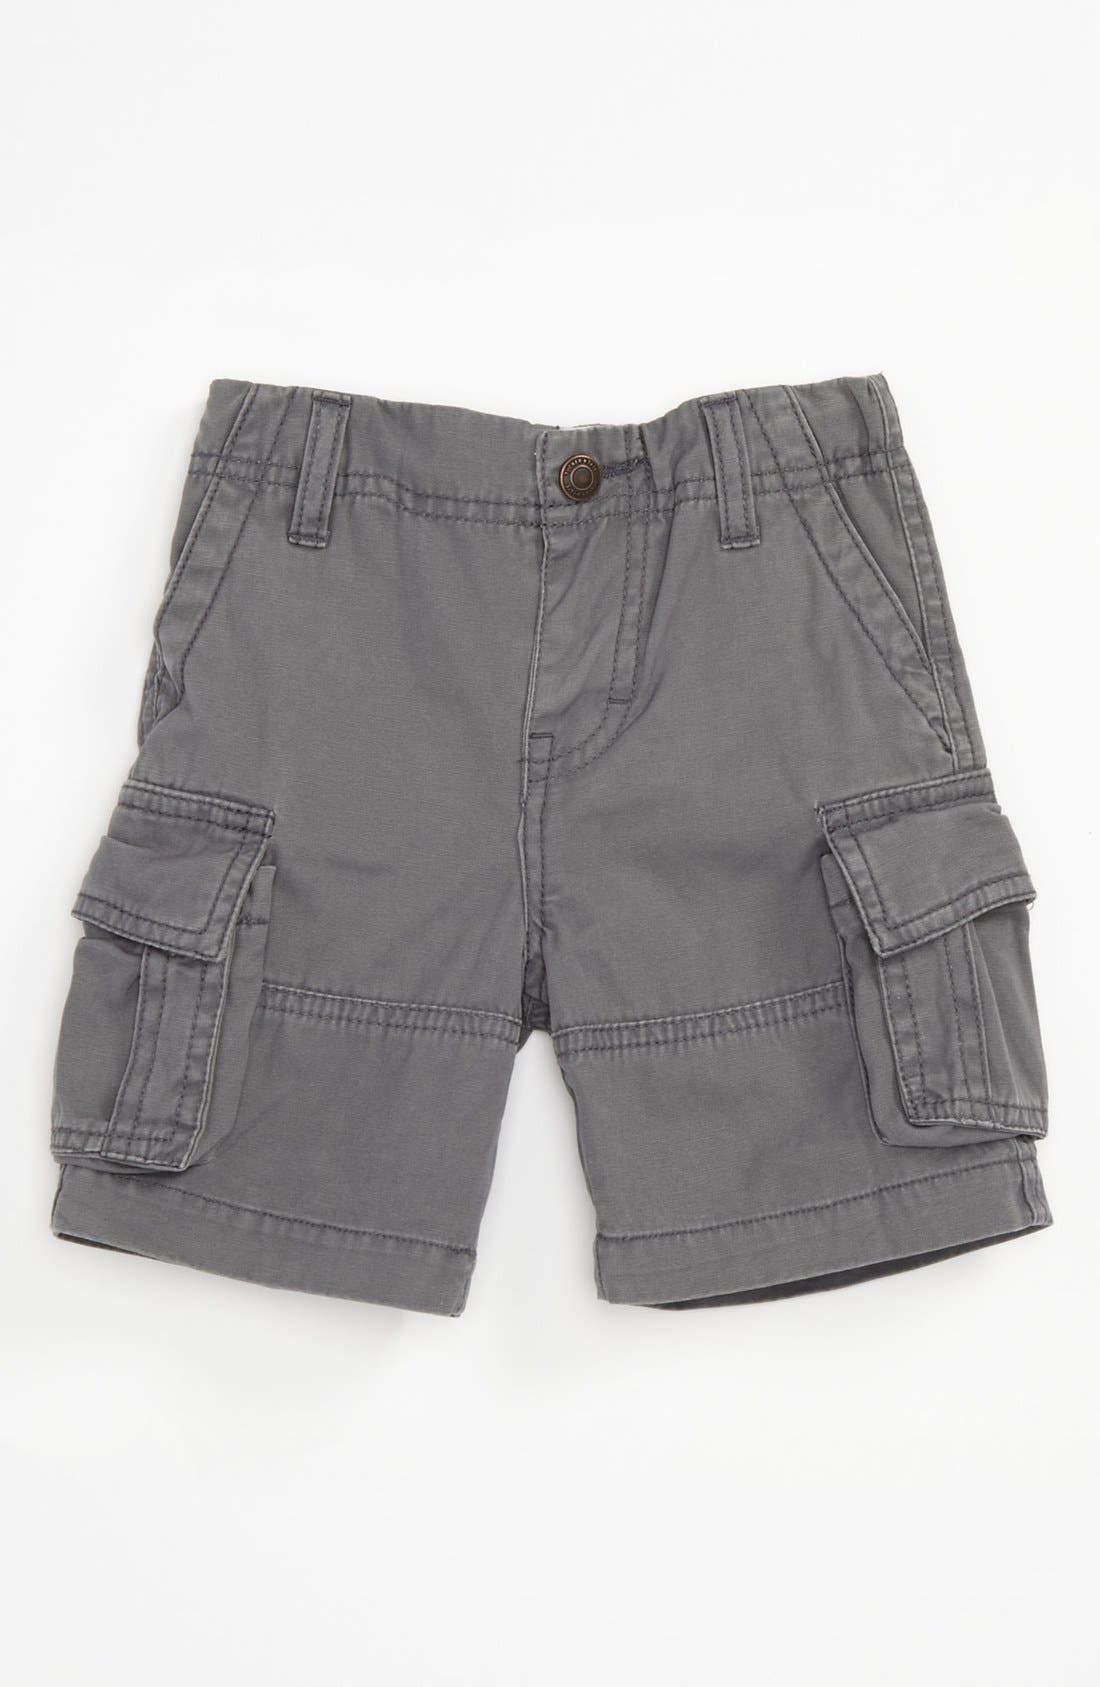 Alternate Image 1 Selected - Tucker + Tate Cargo Shorts (Baby)